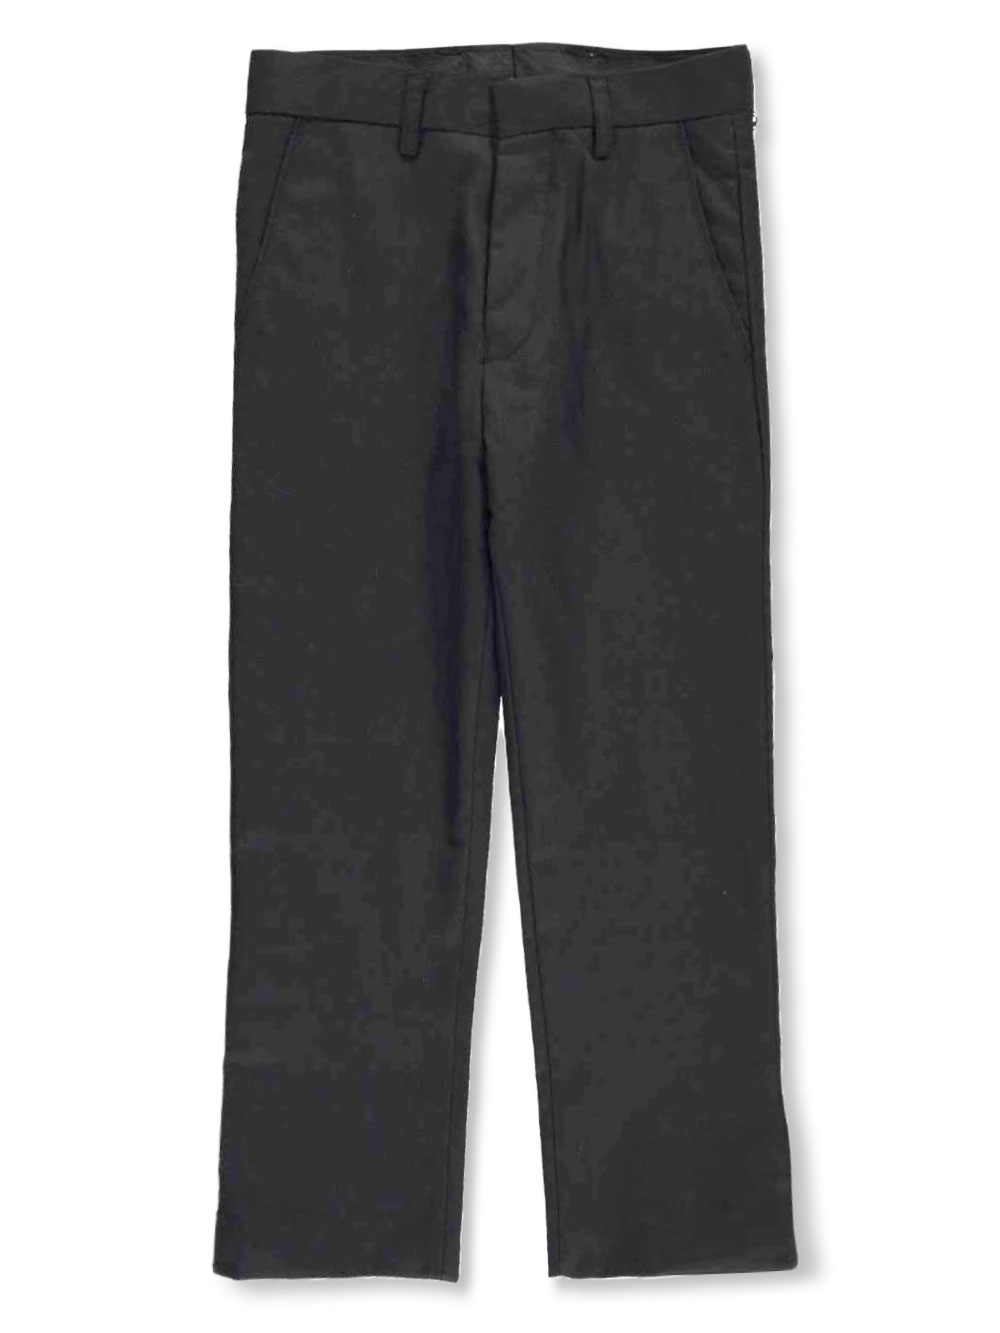 Black and Navy Pants